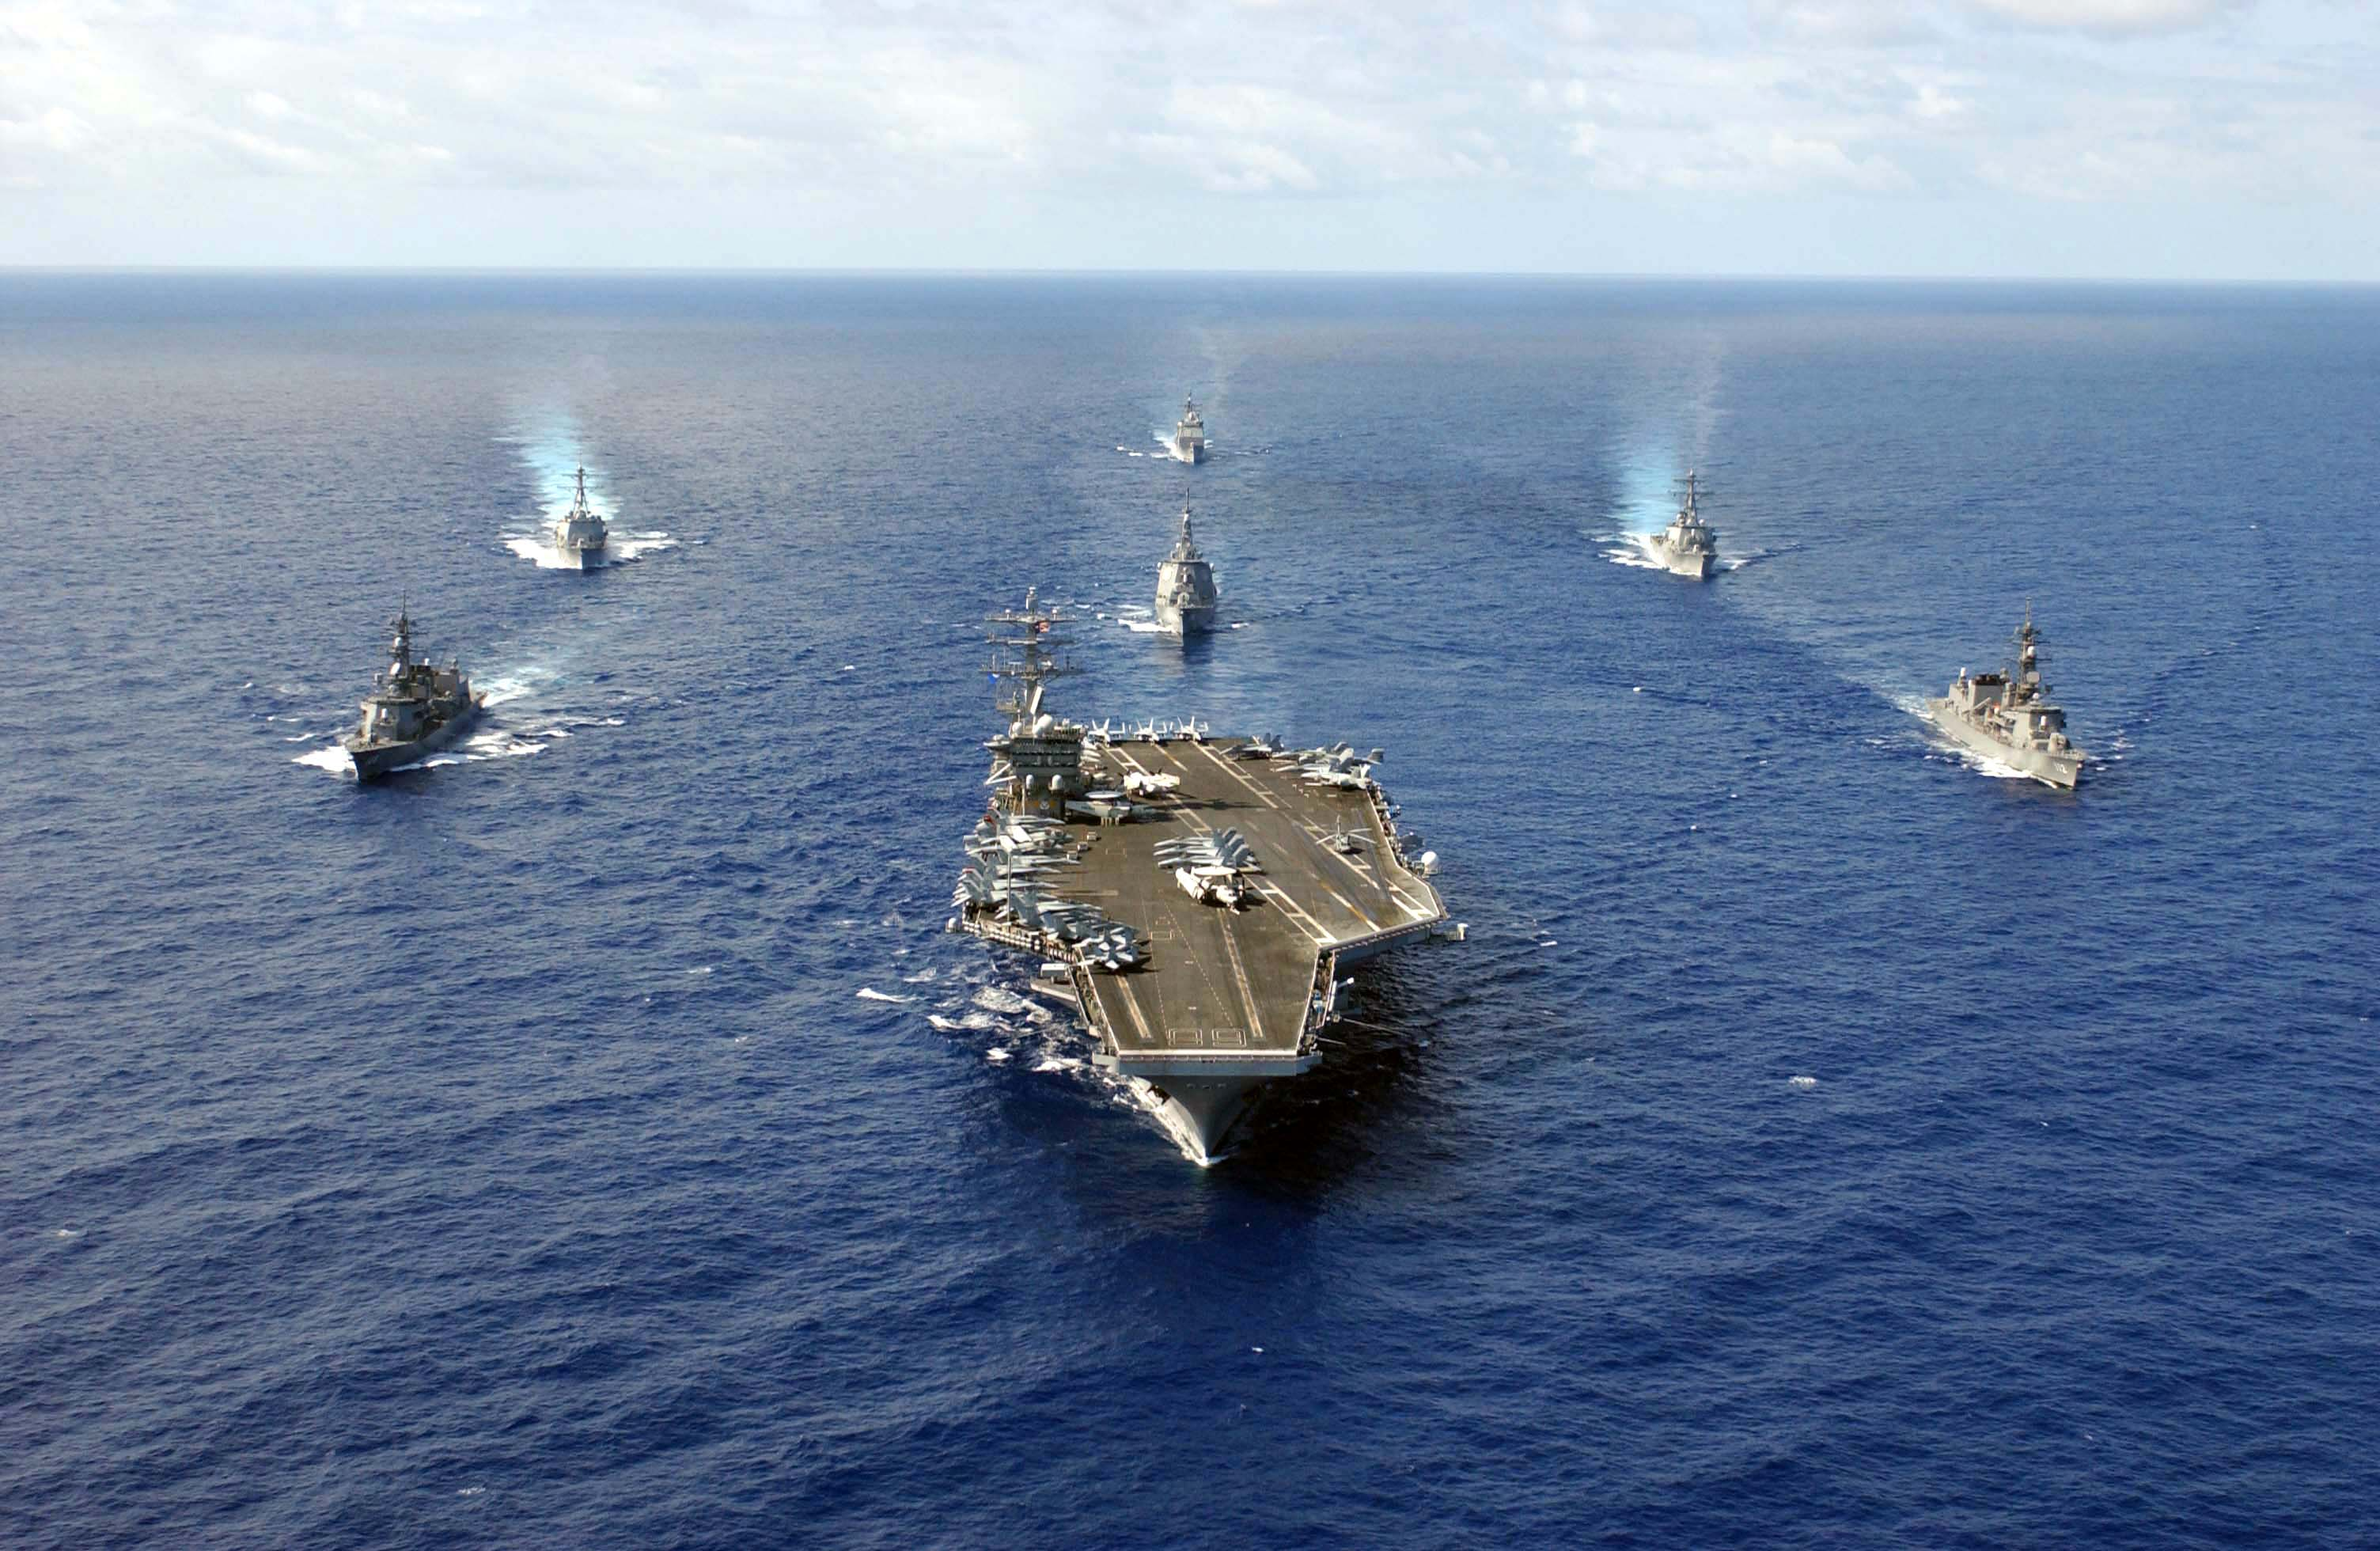 U.S. Sends Second Carrier to Asia Amid Tensions with China